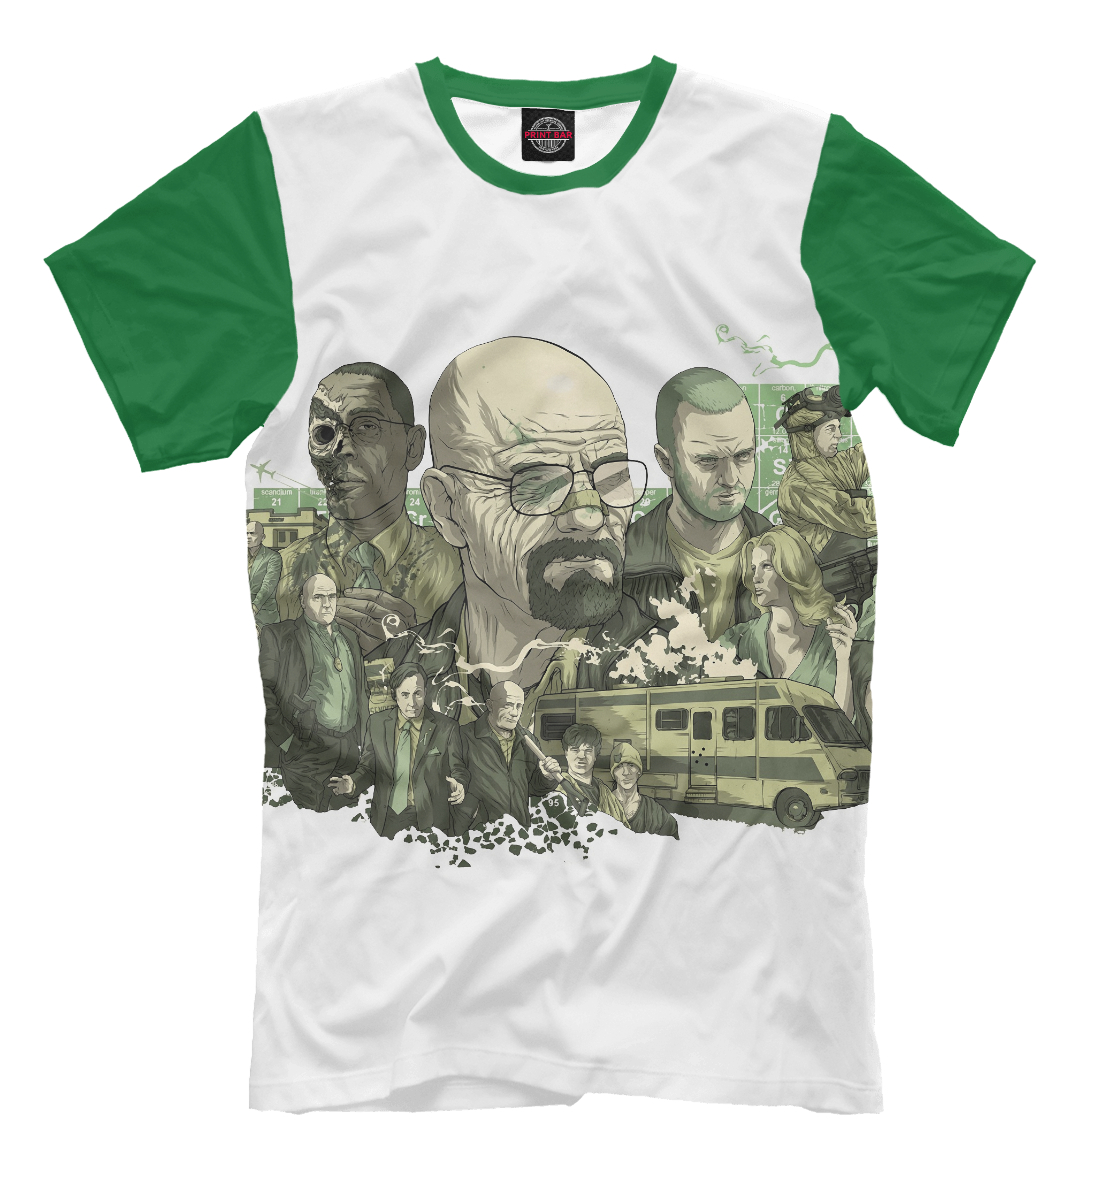 Купить Breaking bad, Printbar, Футболки, VVT-413733-fut-2